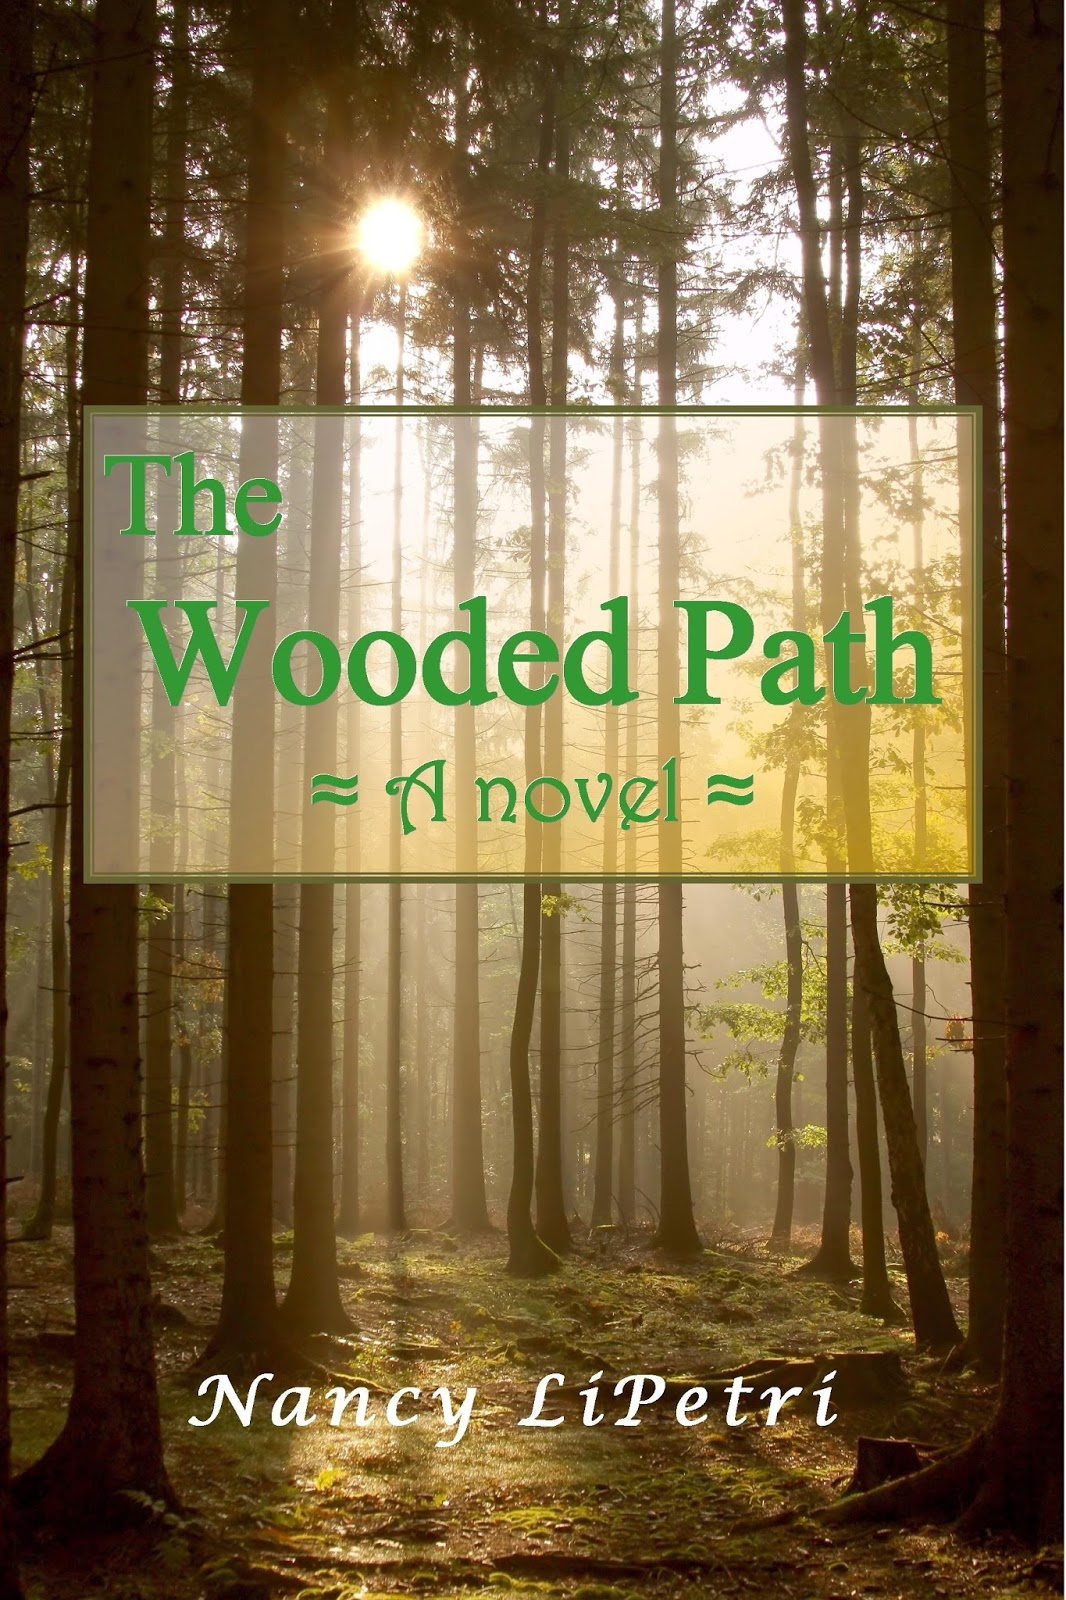 Nancy LiPetri Author Of The Wooded Path